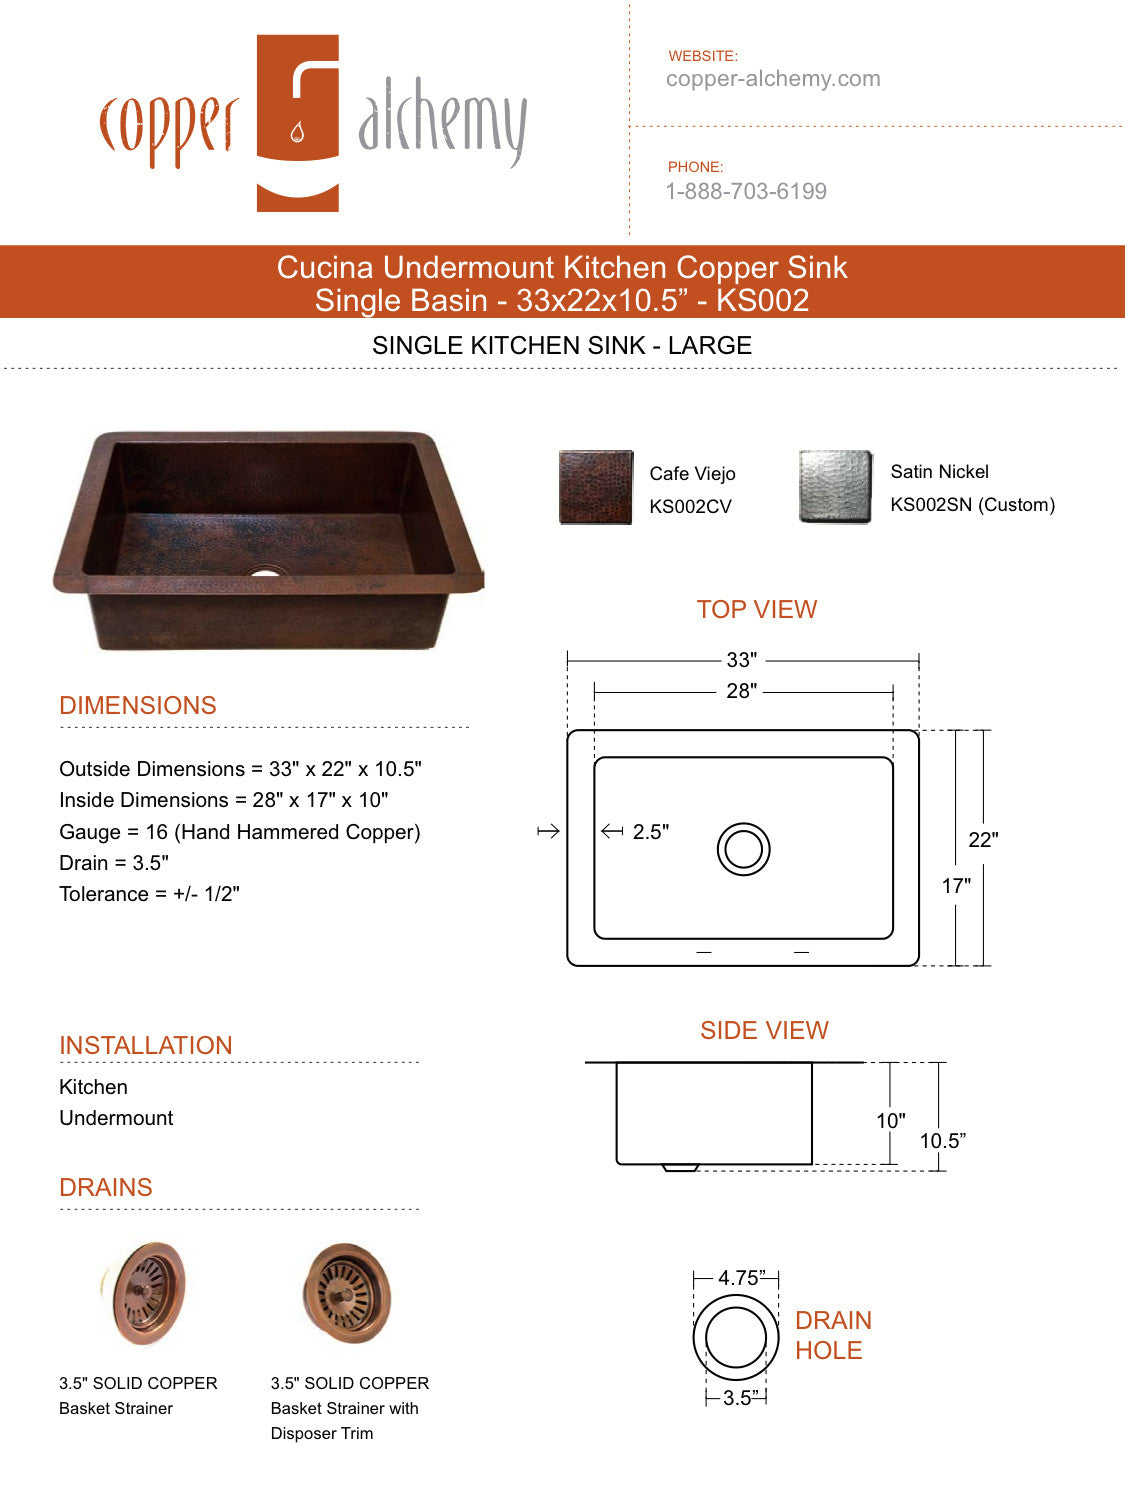 Cucina Undermount Kitchen Copper Sink - Single Basin - 33 x 22 x ...